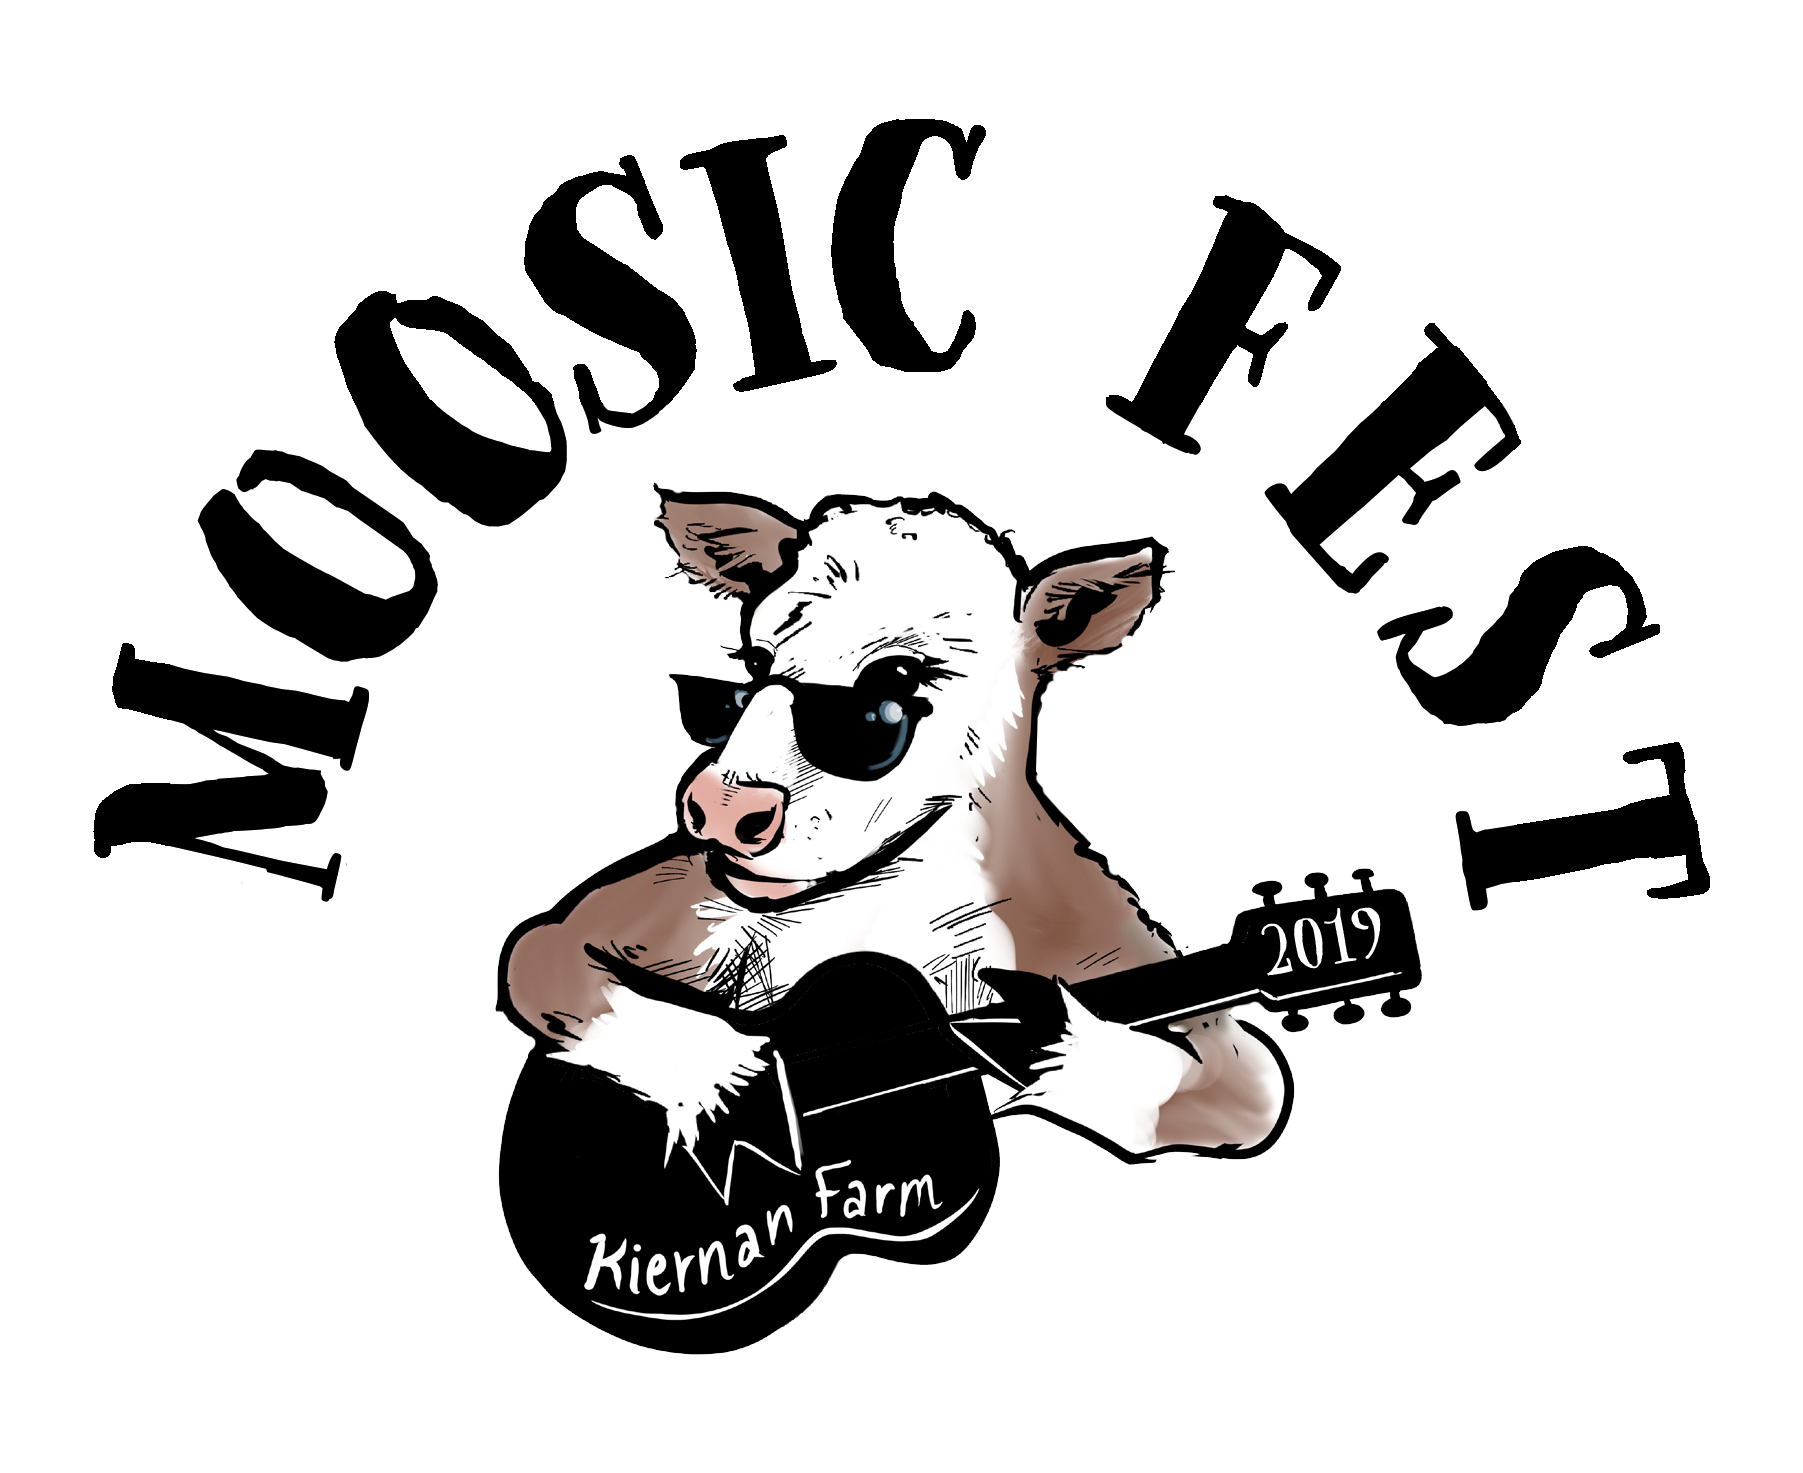 Kiernan-Farm-Moosic-Fest.png